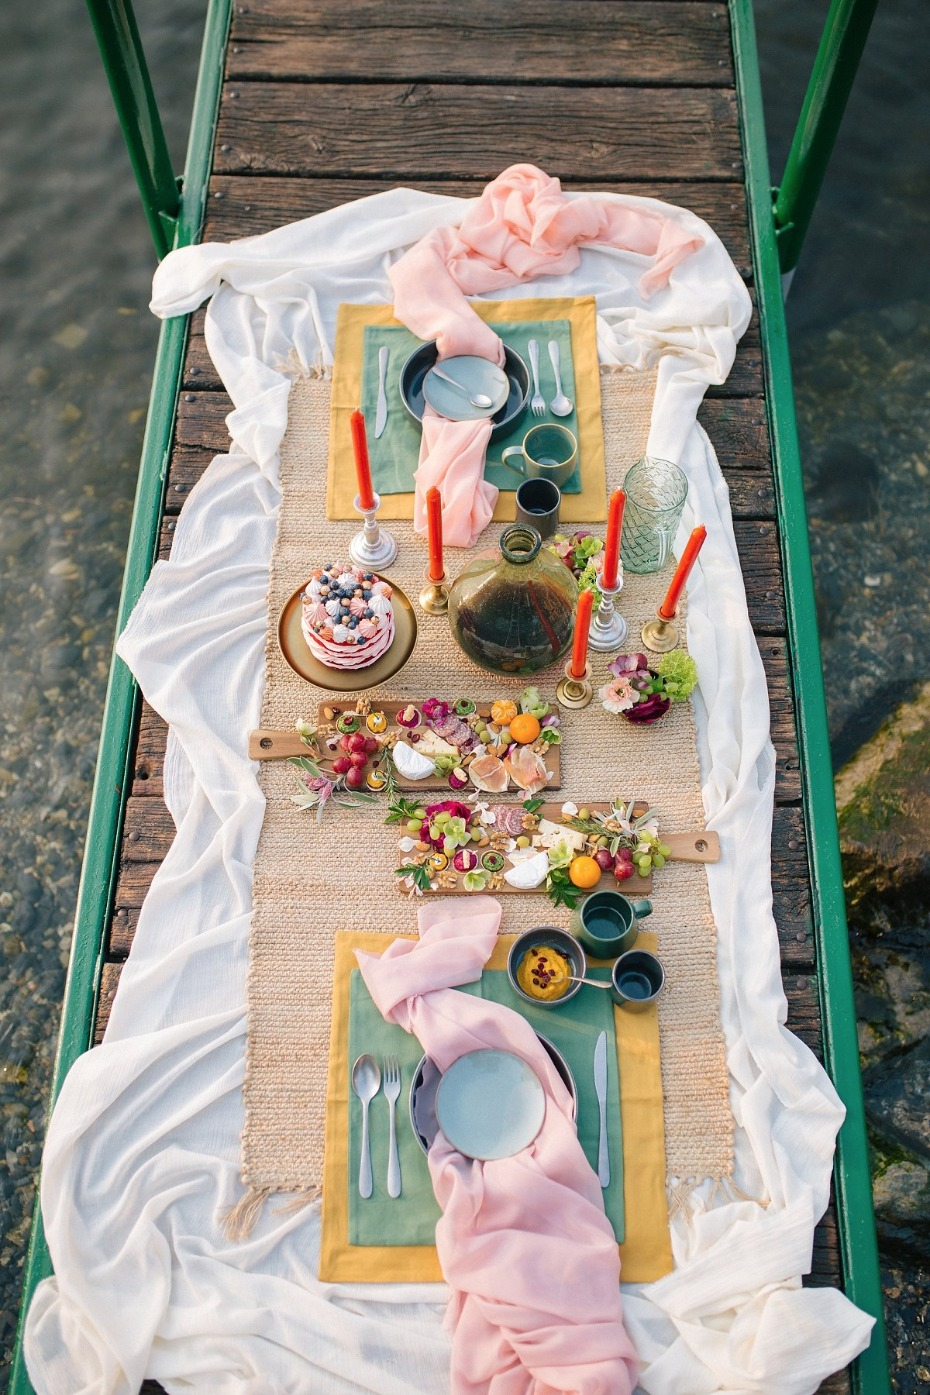 Colorful and yummy dock engagement feast